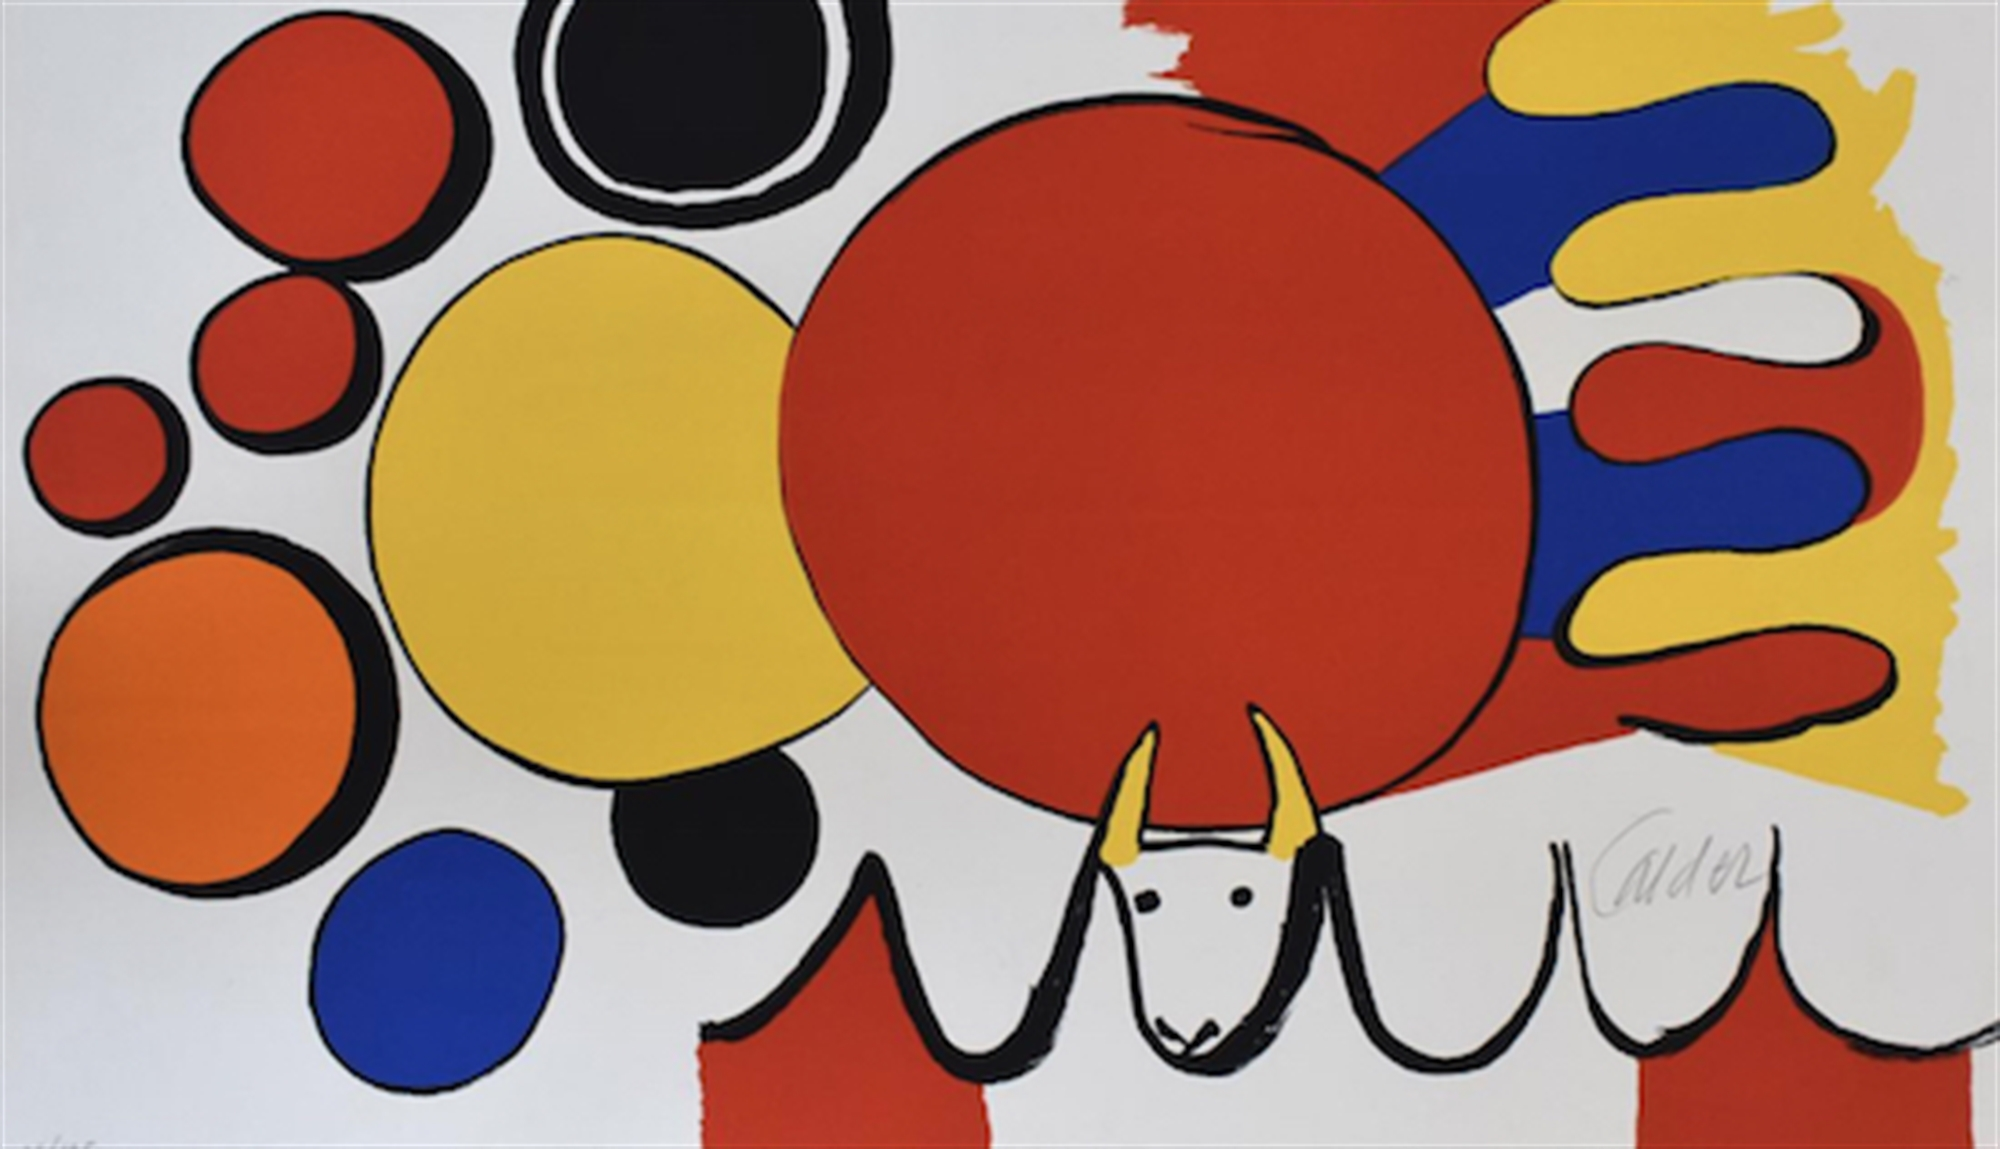 Bull and Circles, from: Poems to Watch by Alexander Calder